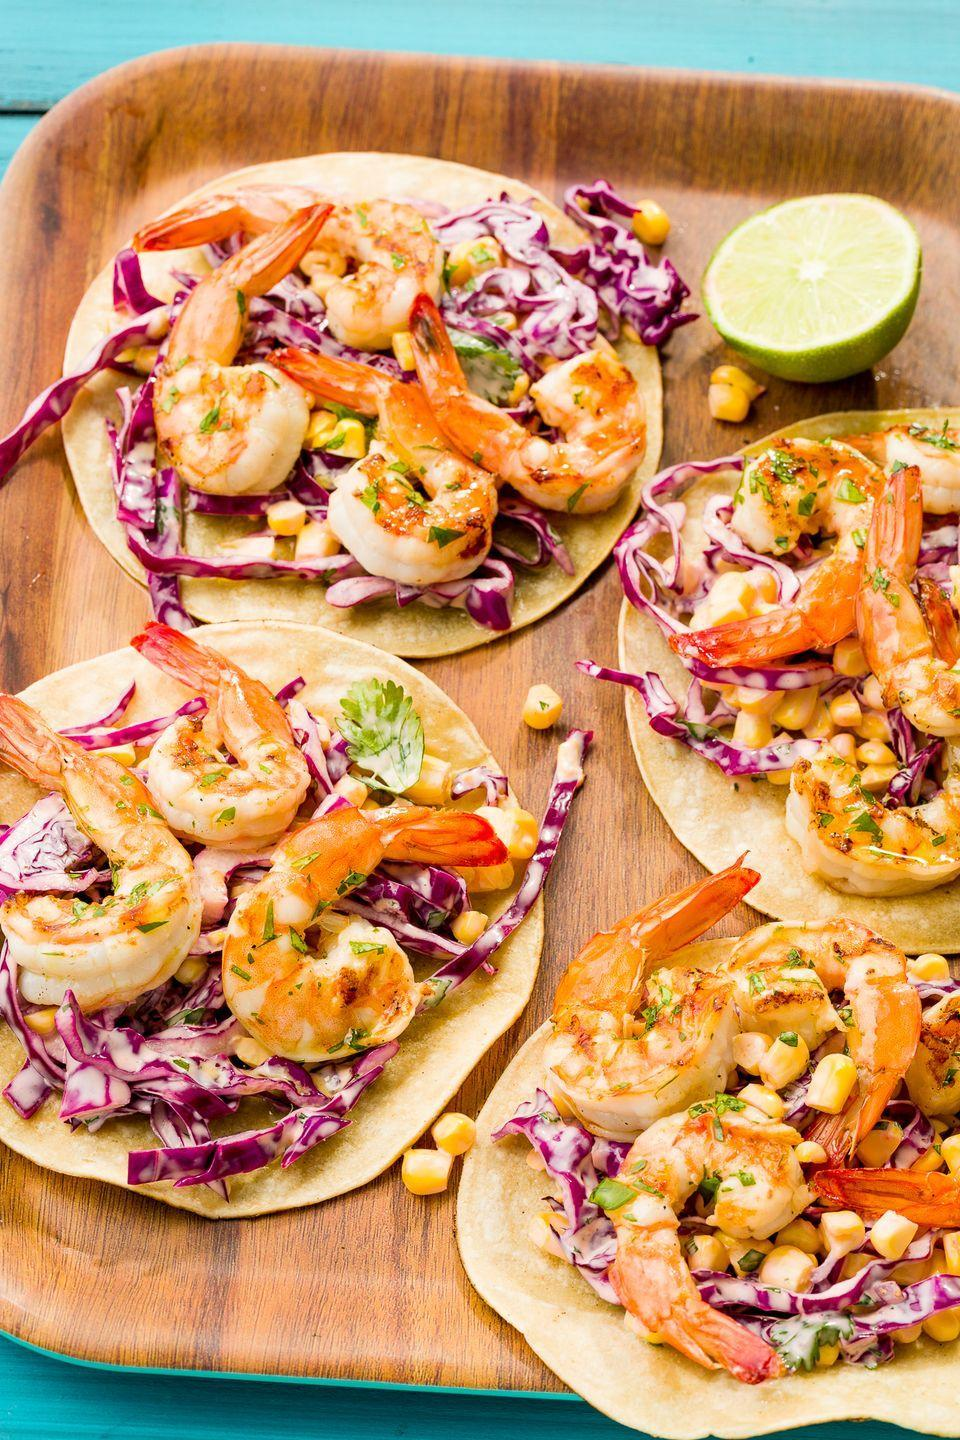 "<p>Smoky, grilled shrimp and spicy slaw are the keys to next-level tacos.</p><p>Get the recipe from <a href=""https://www.delish.com/cooking/recipe-ideas/recipes/a47499/grilled-shrimp-tacos-with-sriracha-slaw-recipe/"" rel=""nofollow noopener"" target=""_blank"" data-ylk=""slk:Delish"" class=""link rapid-noclick-resp"">Delish</a>.</p>"